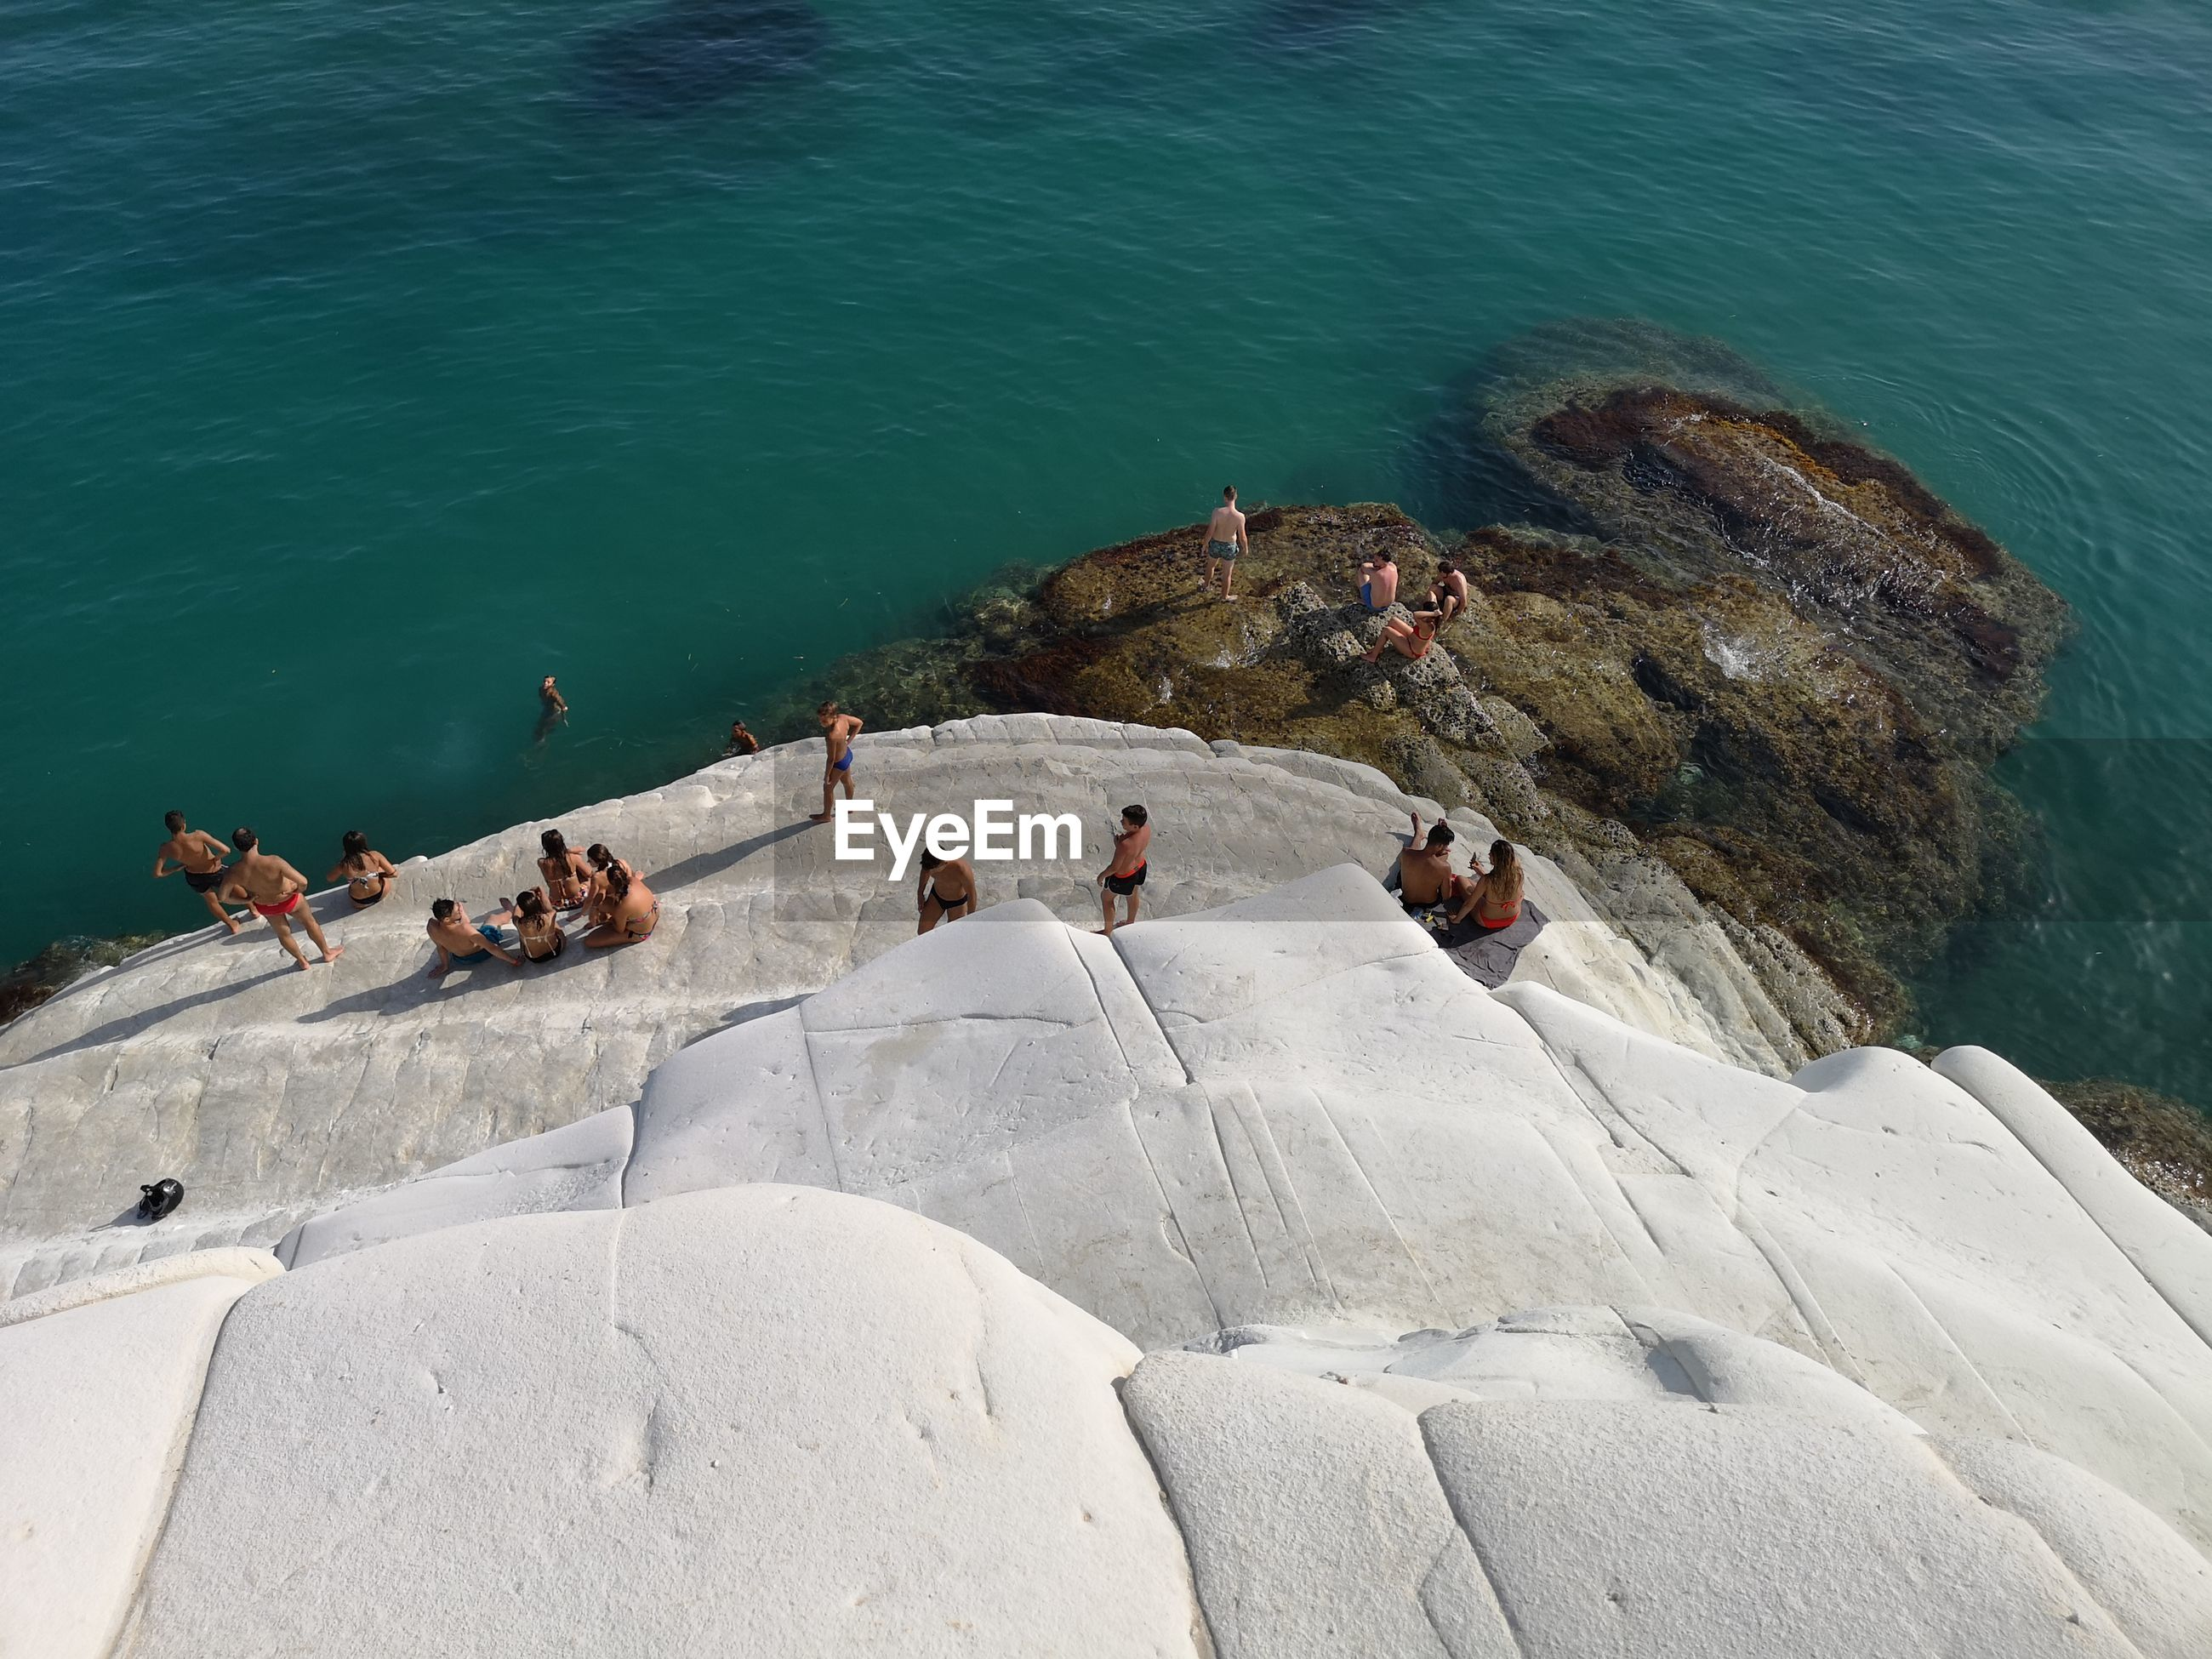 HIGH ANGLE VIEW OF GROUP OF PEOPLE ON ROCKS BY SEA